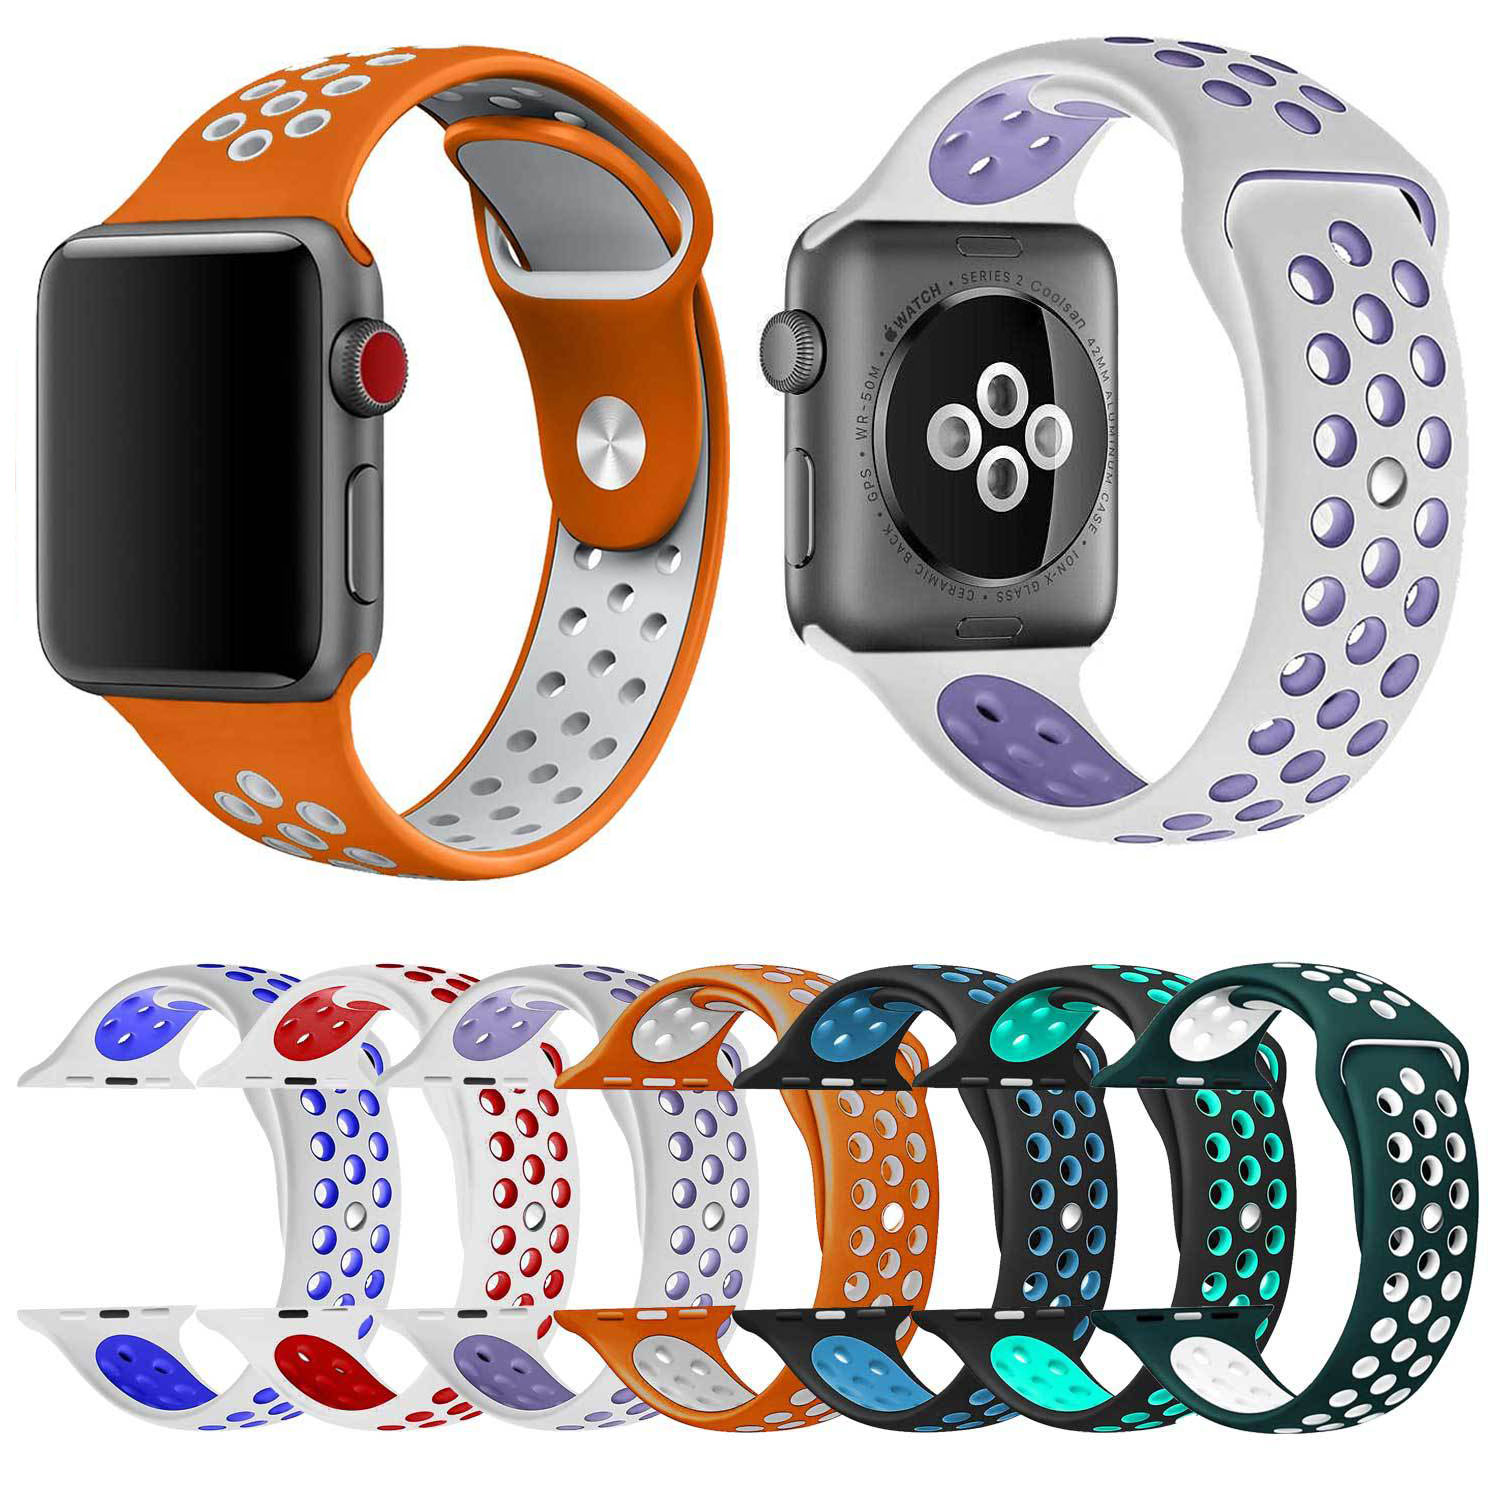 ᗑnew Breathable Silicone Sports Band For Apple Watch Series 1 2 3